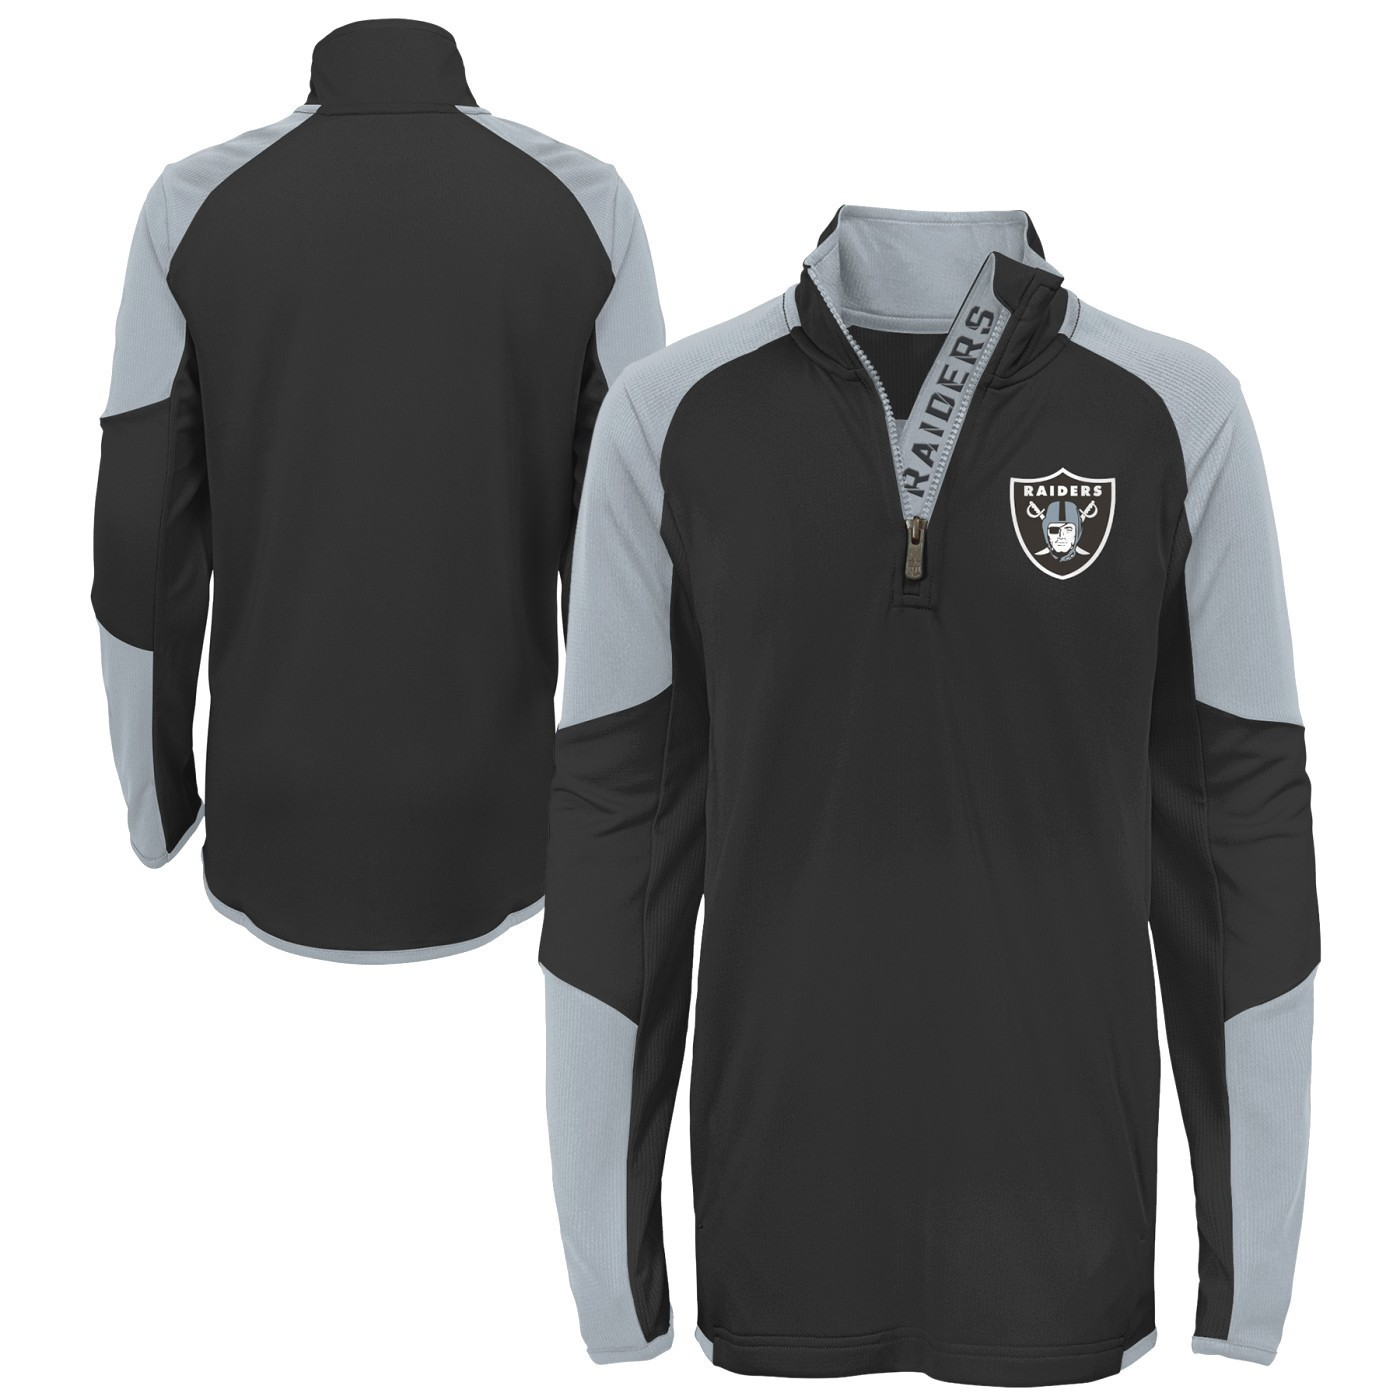 save off 1dc1f 25aef Details about Oakland Raiders Youth NFL